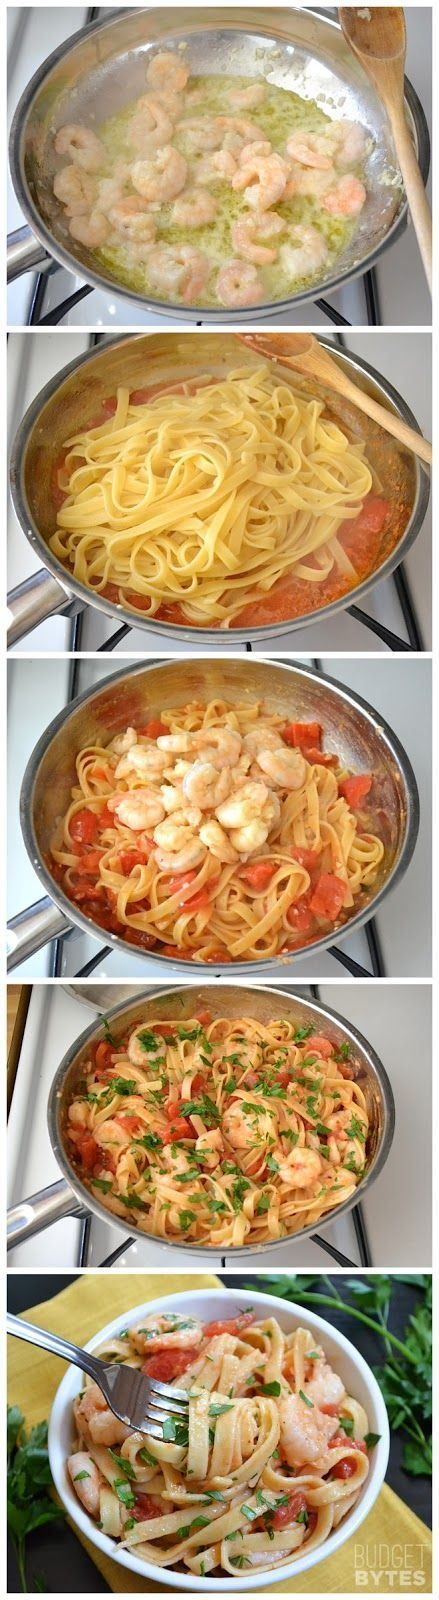 Spicy Shrimp & Tomato Pasta Recipe! - Your Heaven for healthy food   Paleo Recipes and Easy to cook Desserts - Foodie.com